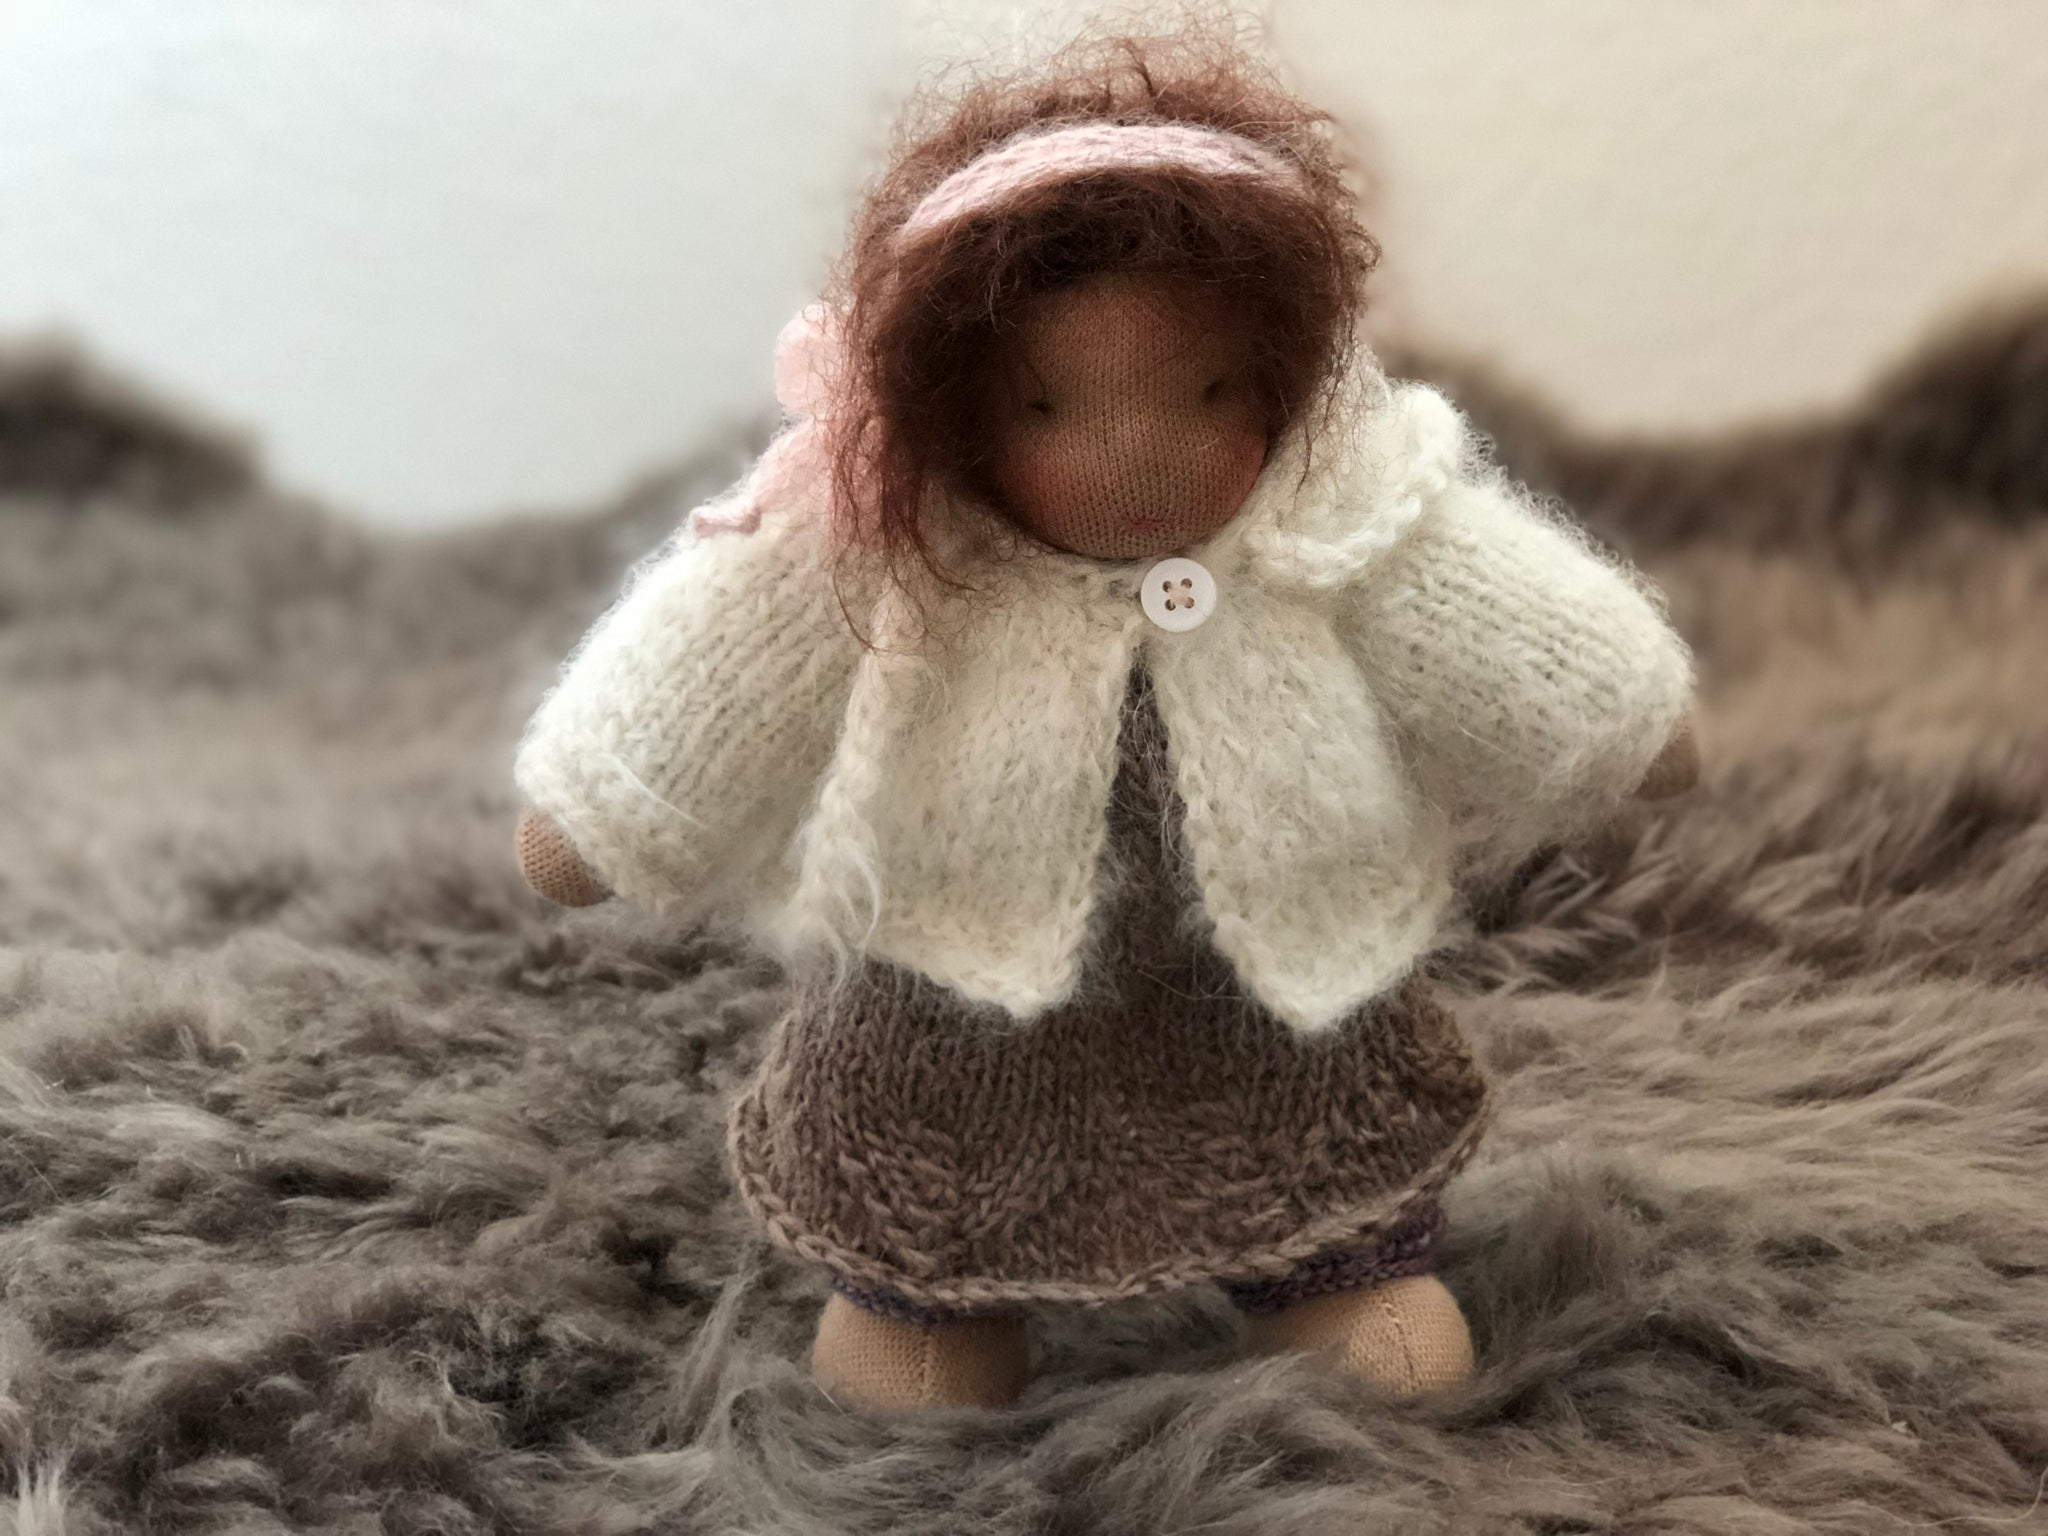 Little pocket doll - Leslie Ringalina